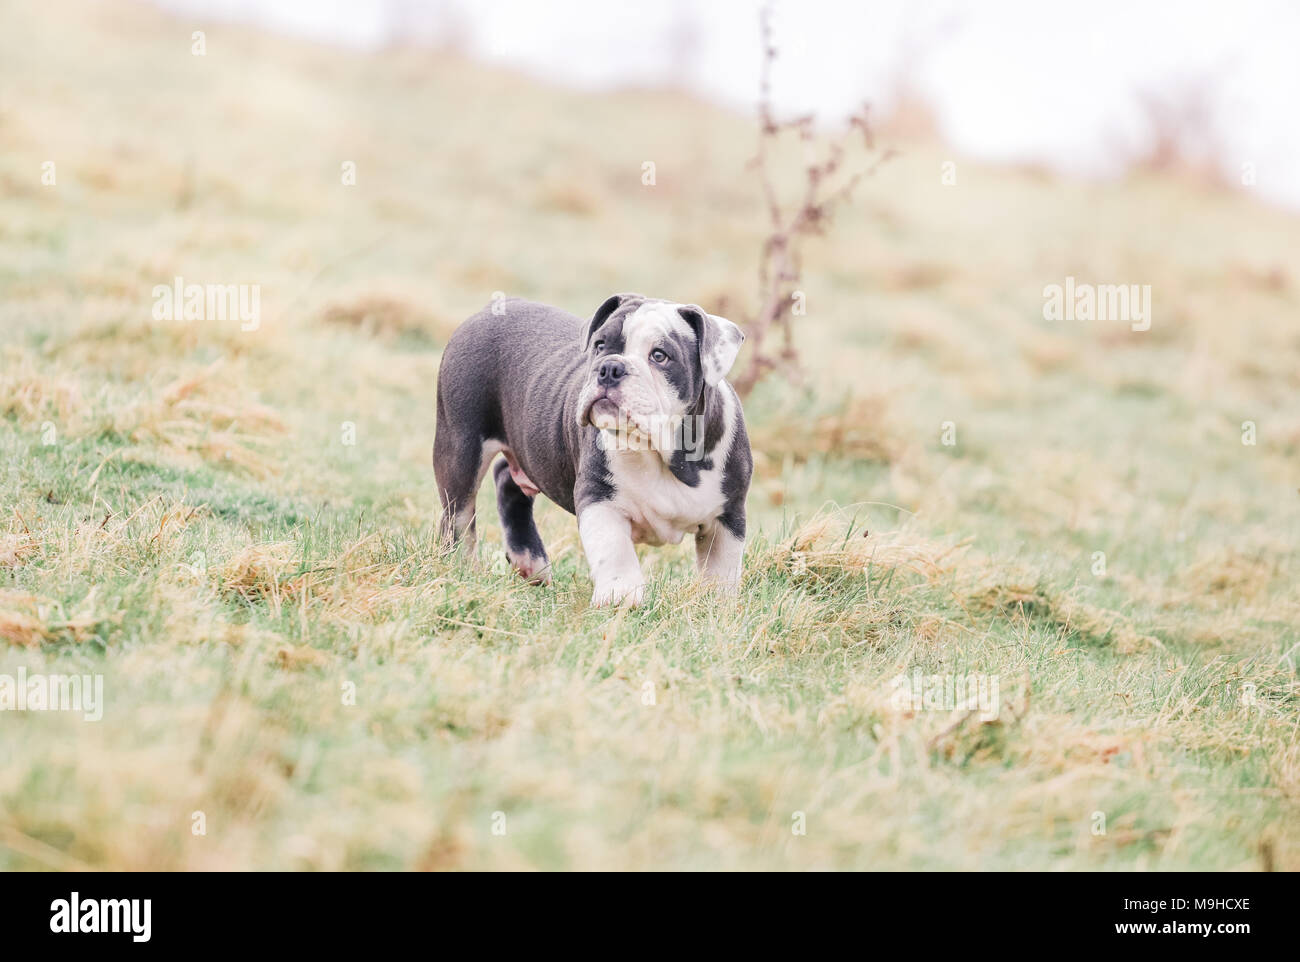 Blue English / British Bulldog puppy out for a walk in the countryside, UK Stock Photo